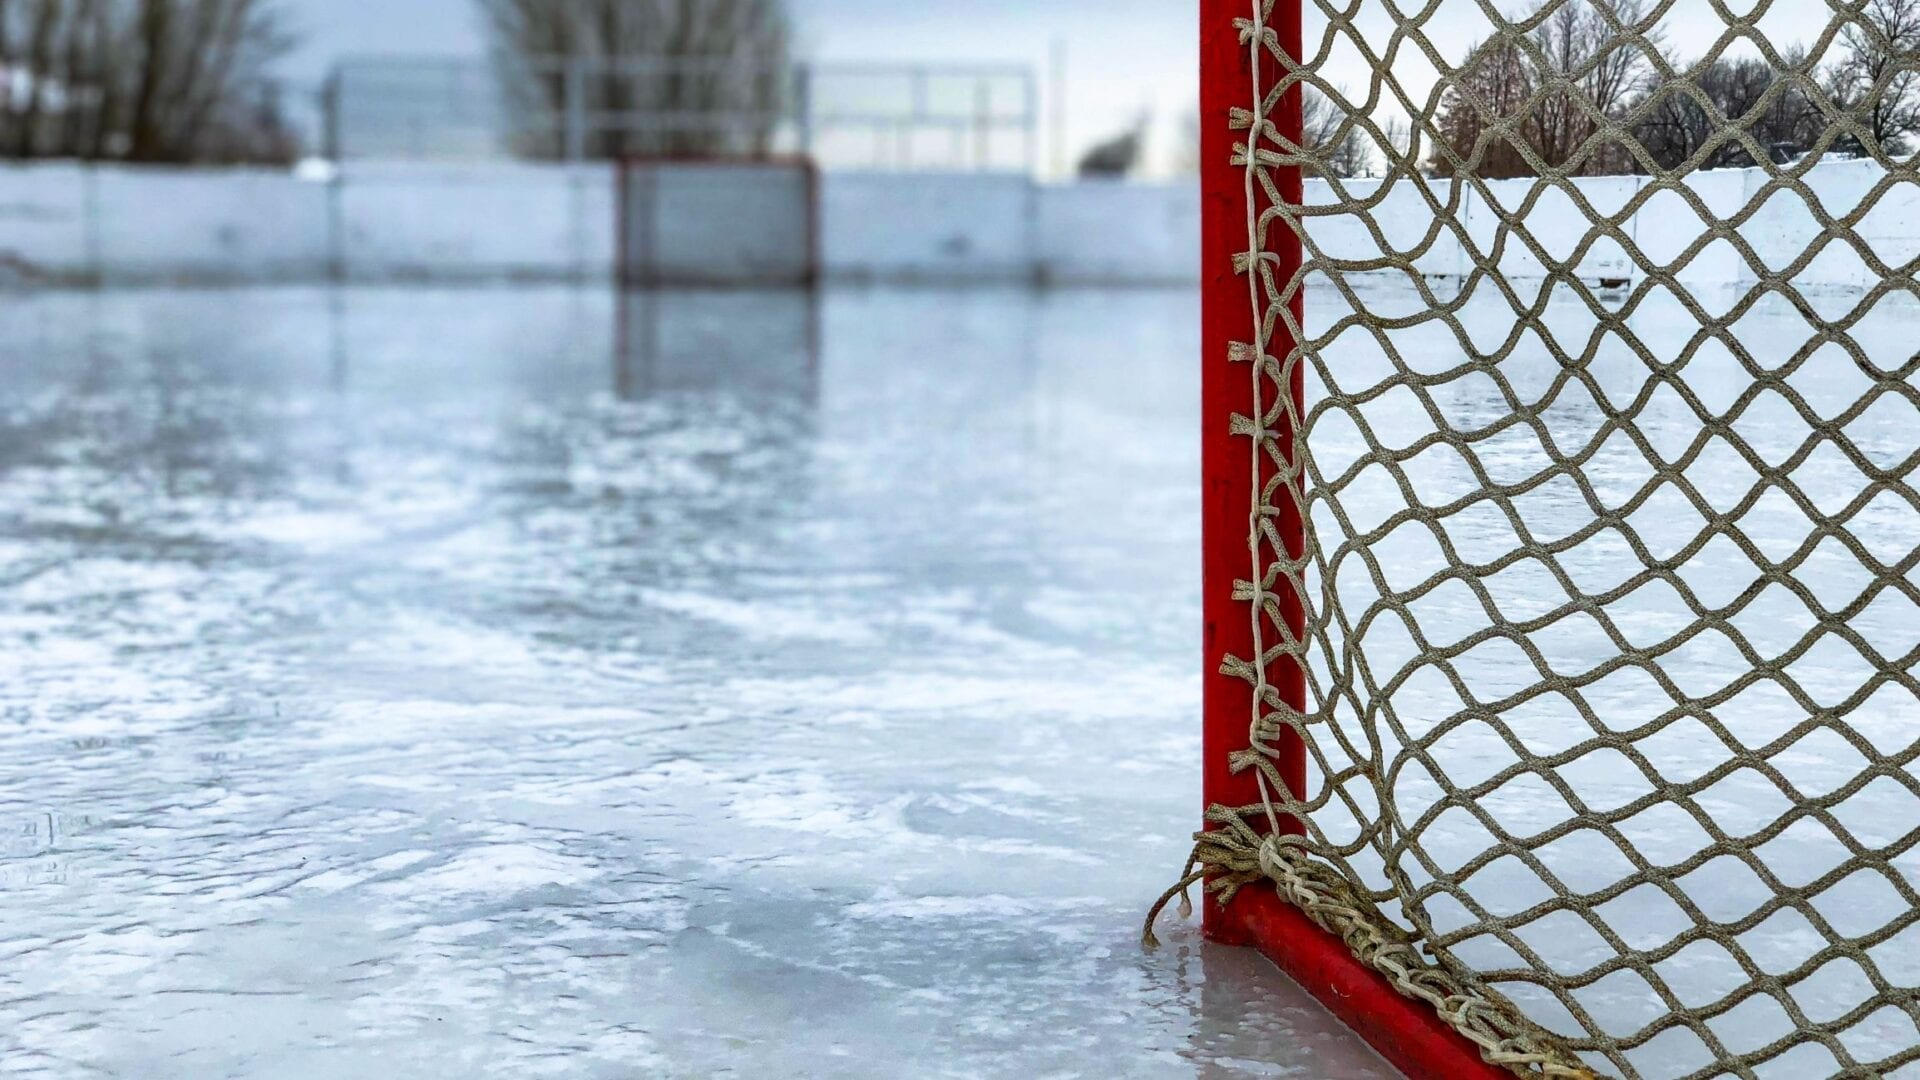 Ground level view of Hockey nets sitting on ice rink